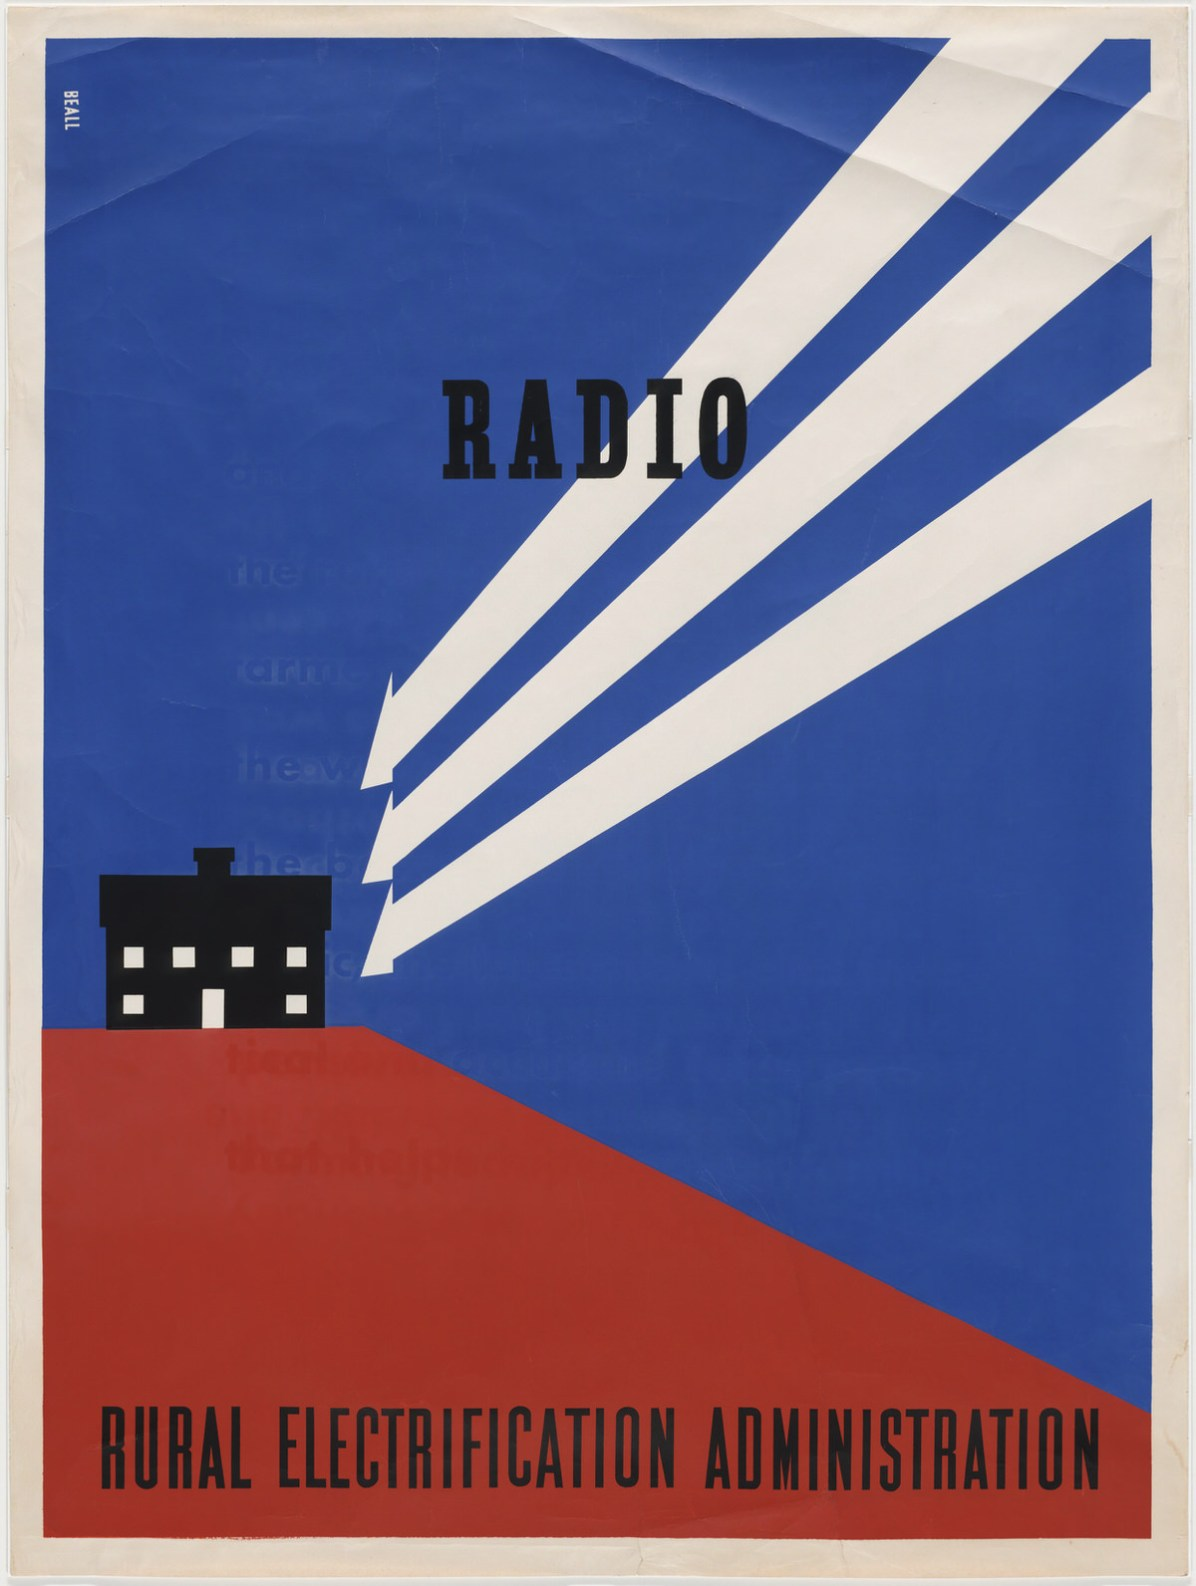 Beall, Radio – Rural Electrification Administration, 1937